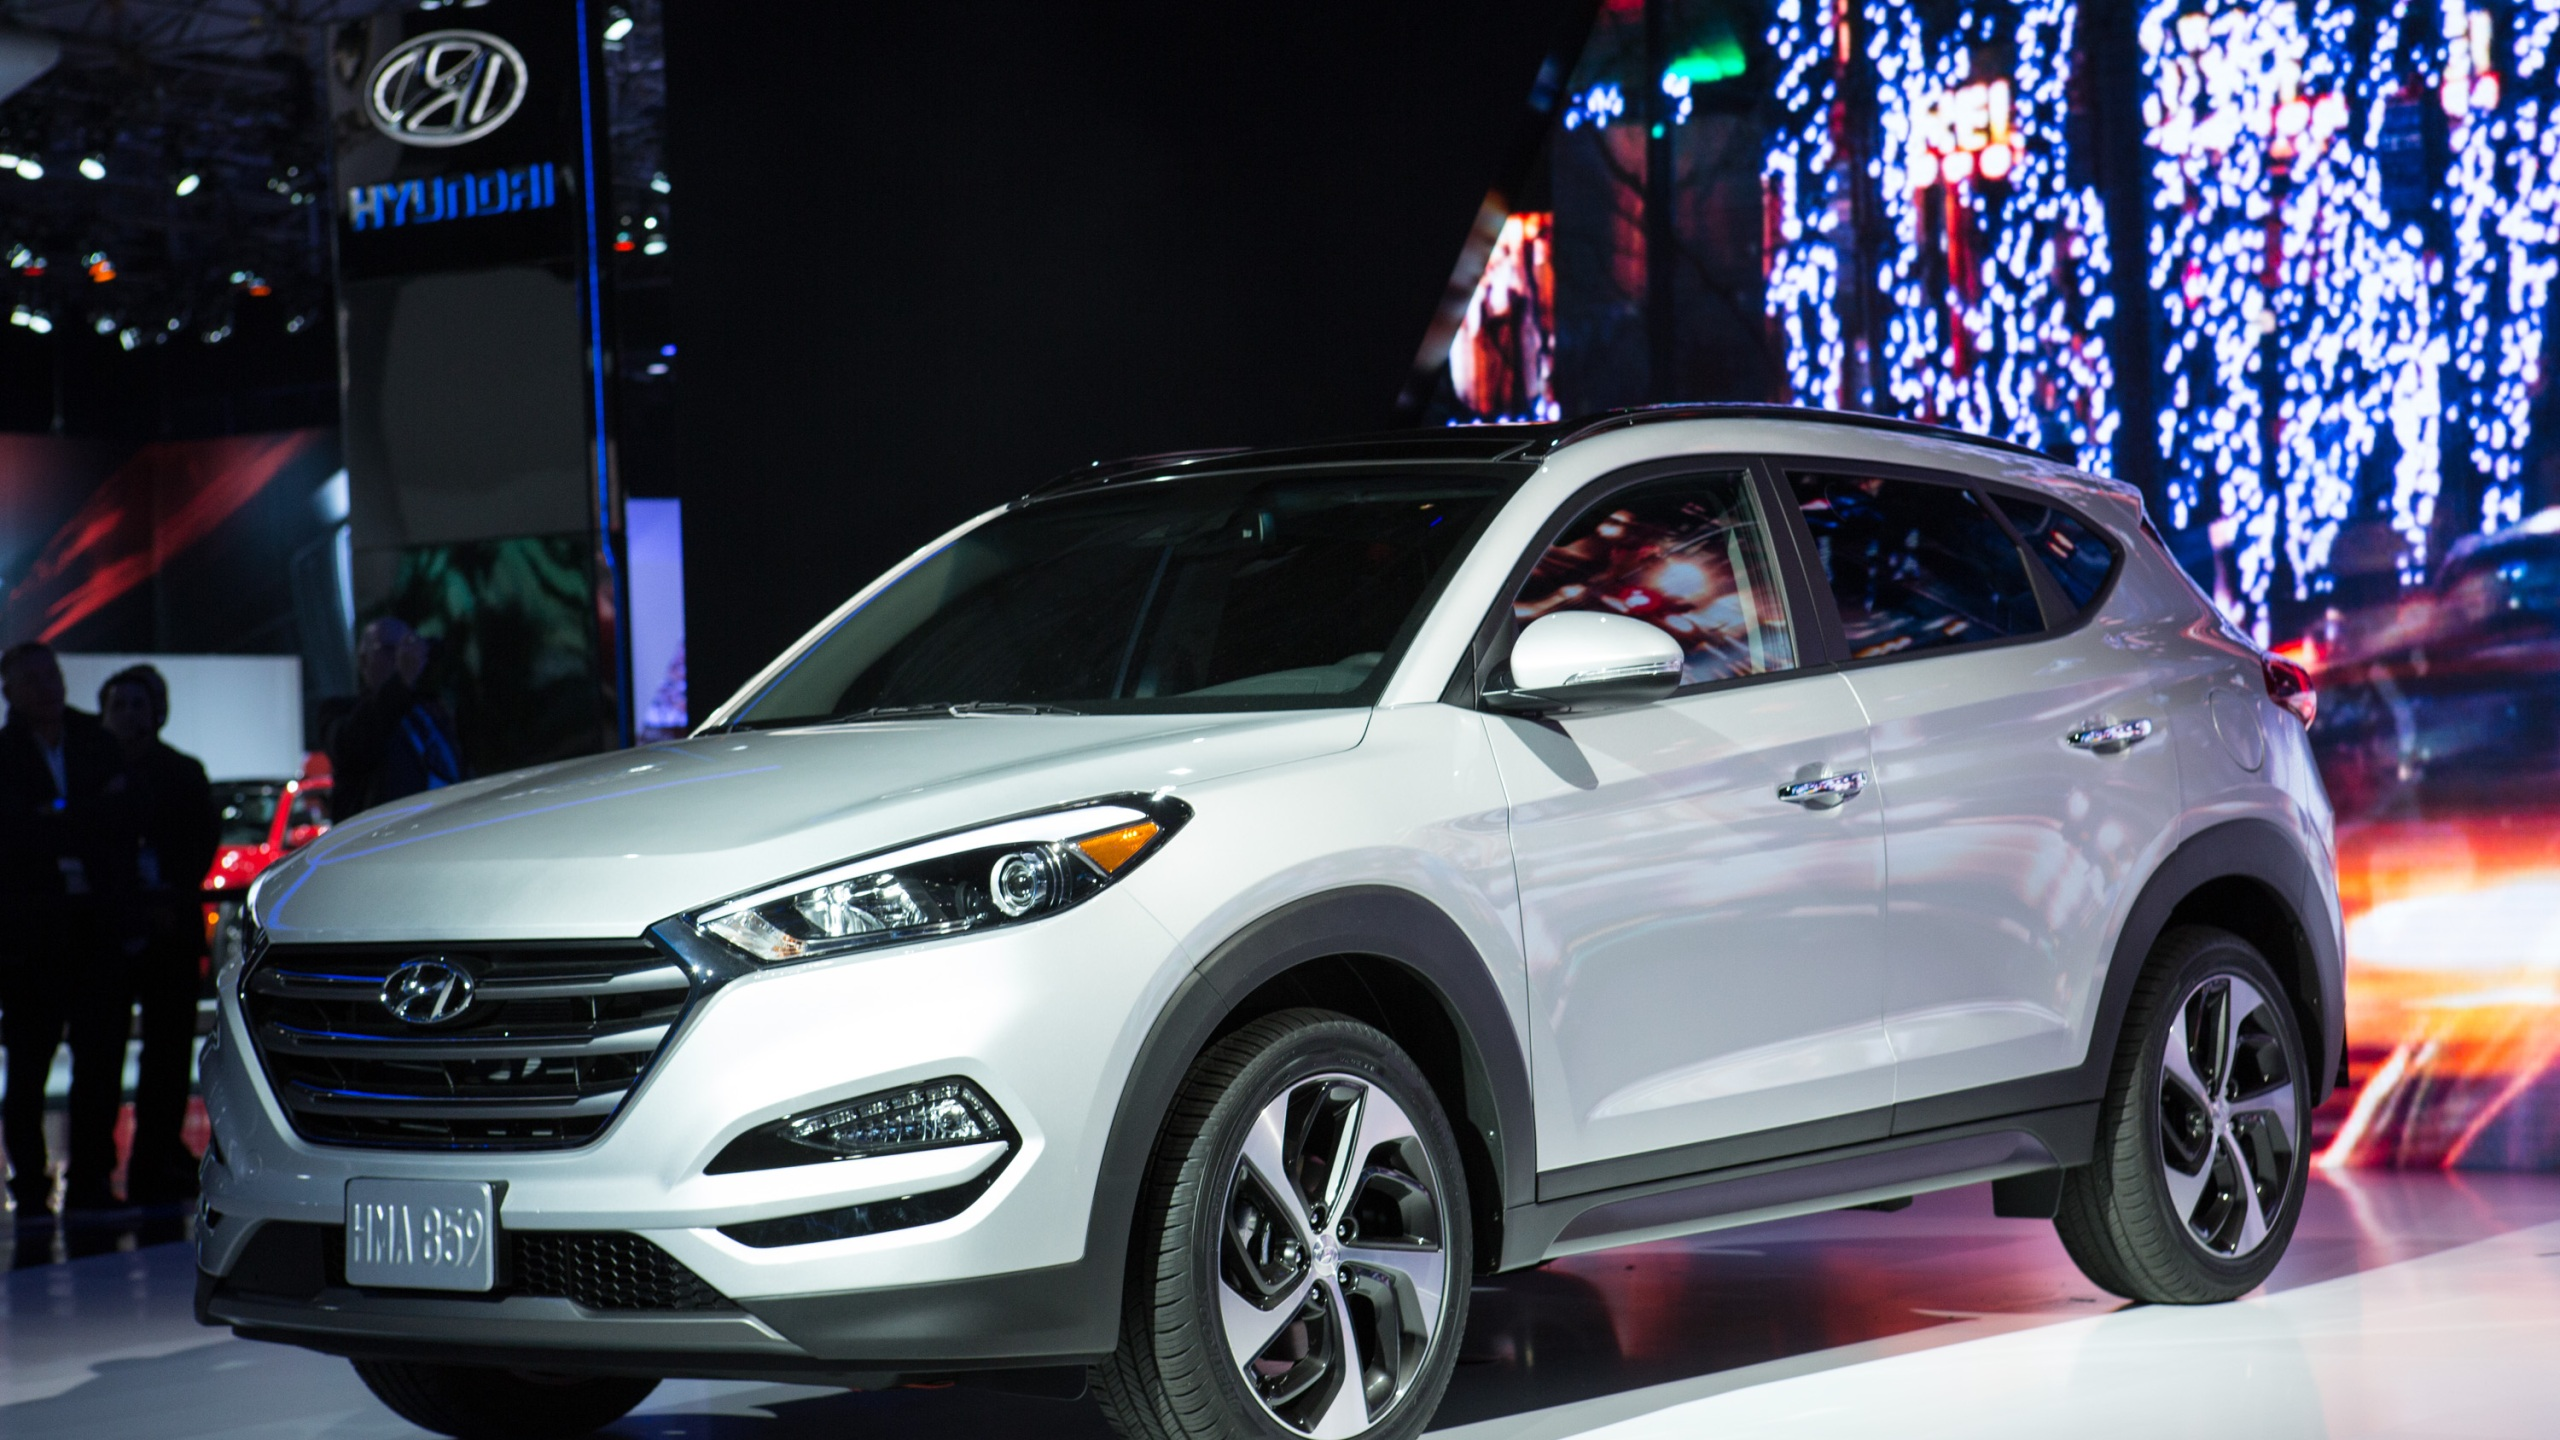 Hyundai Motor America introduces the new Tucson model at the New York International Auto Show at the Javits Center on April 1, 2015 in New York City. (Kevin Hagen/Getty Images)